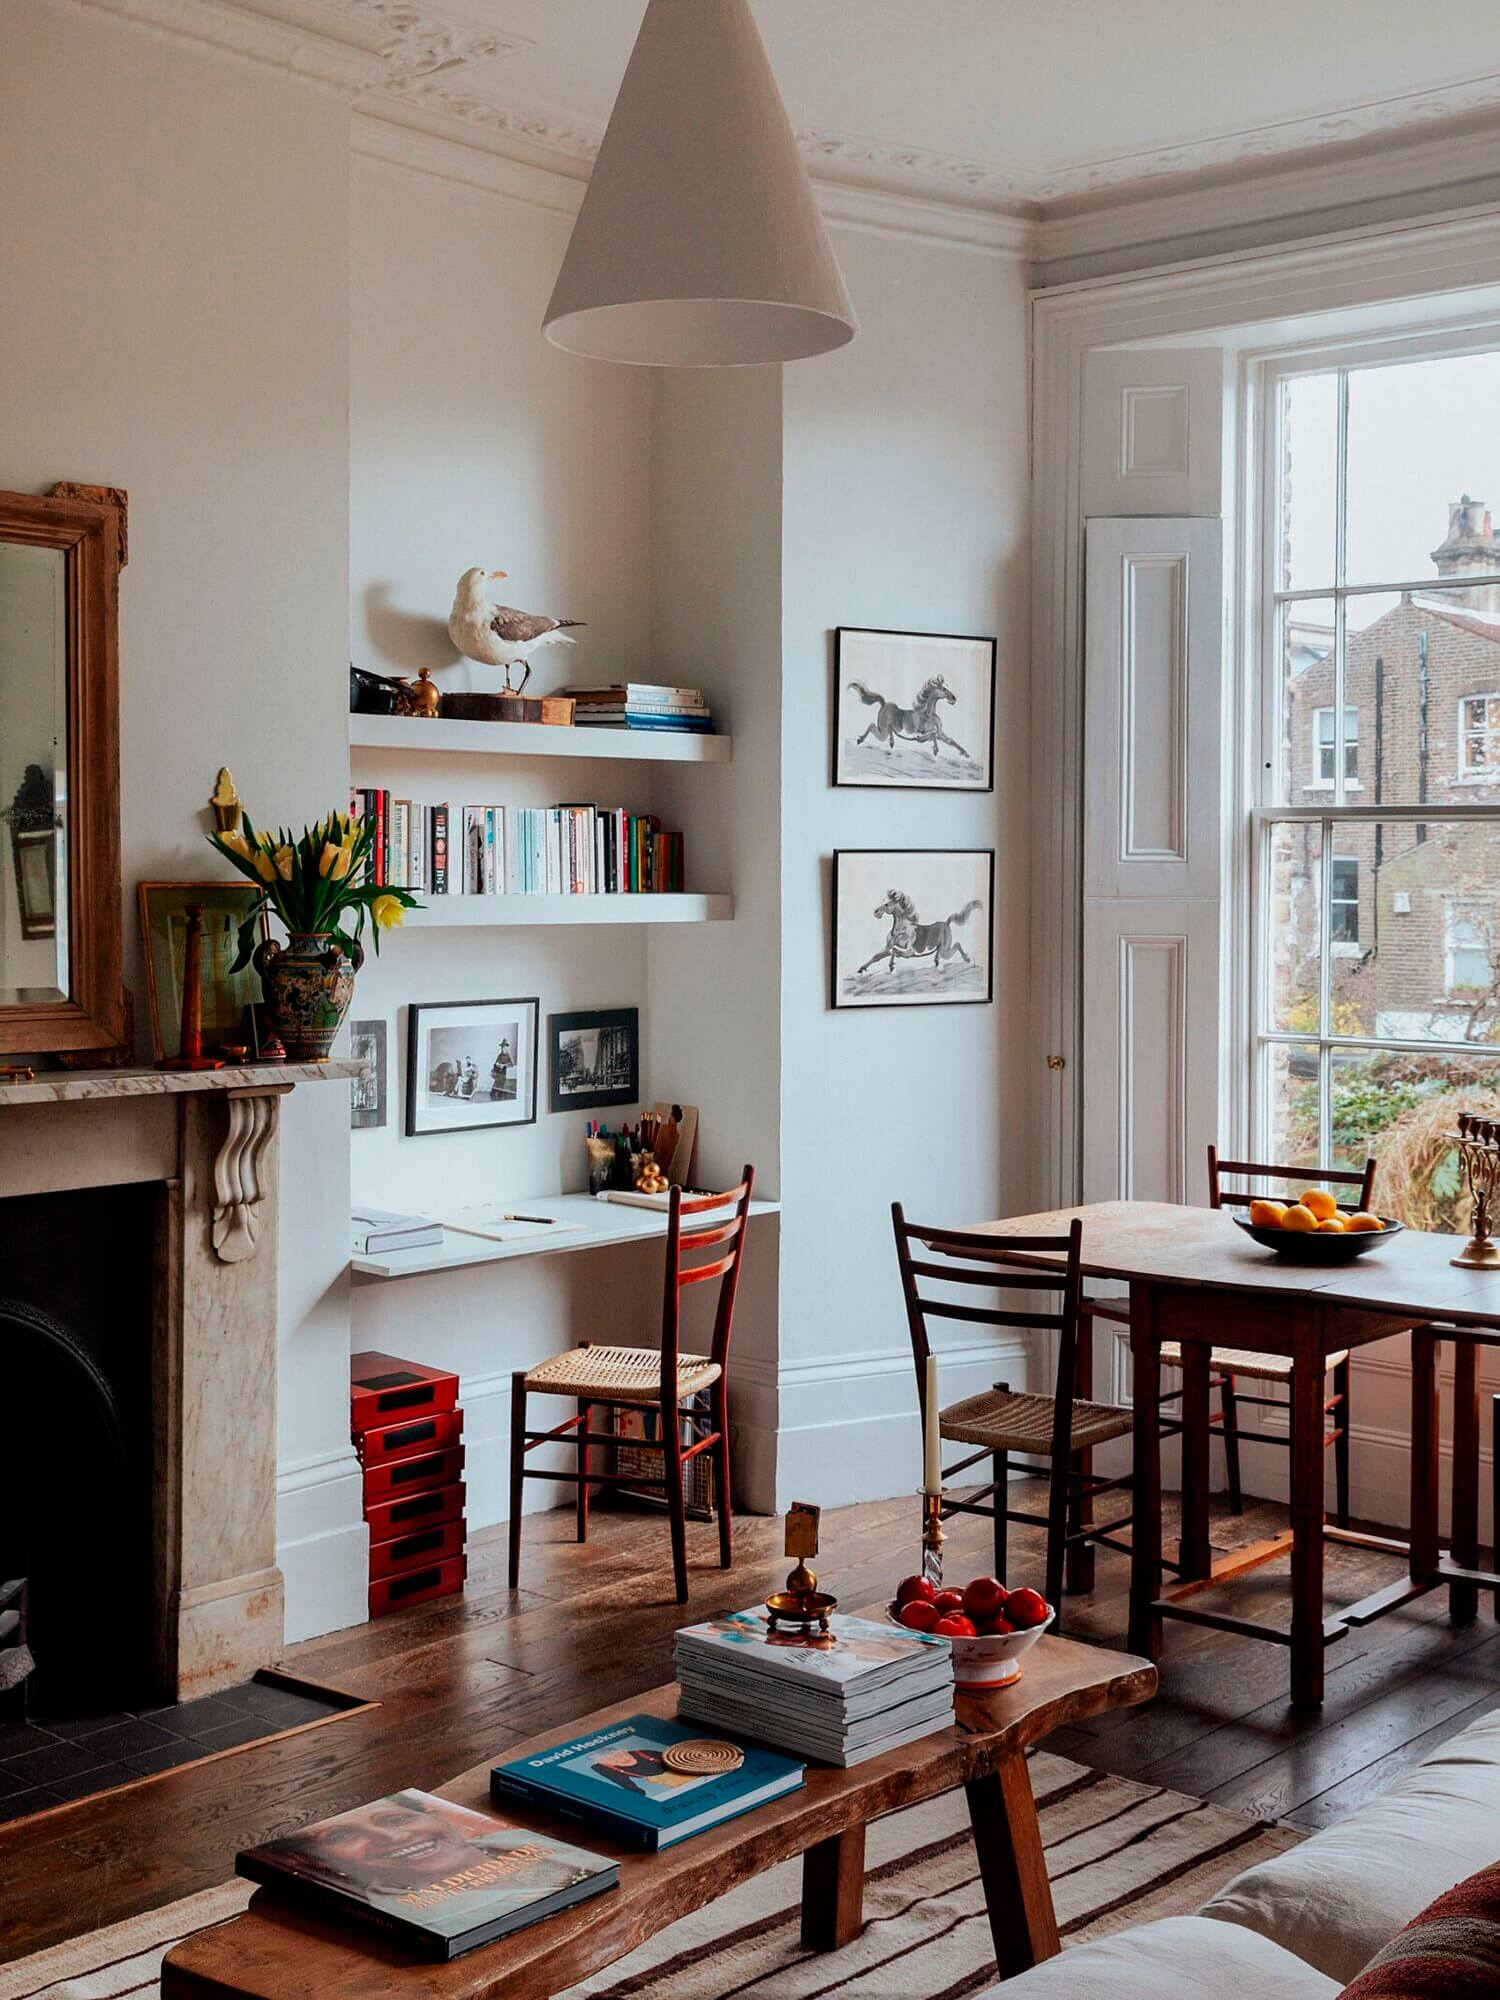 The Small London Apartment Of An Antiques Dealer